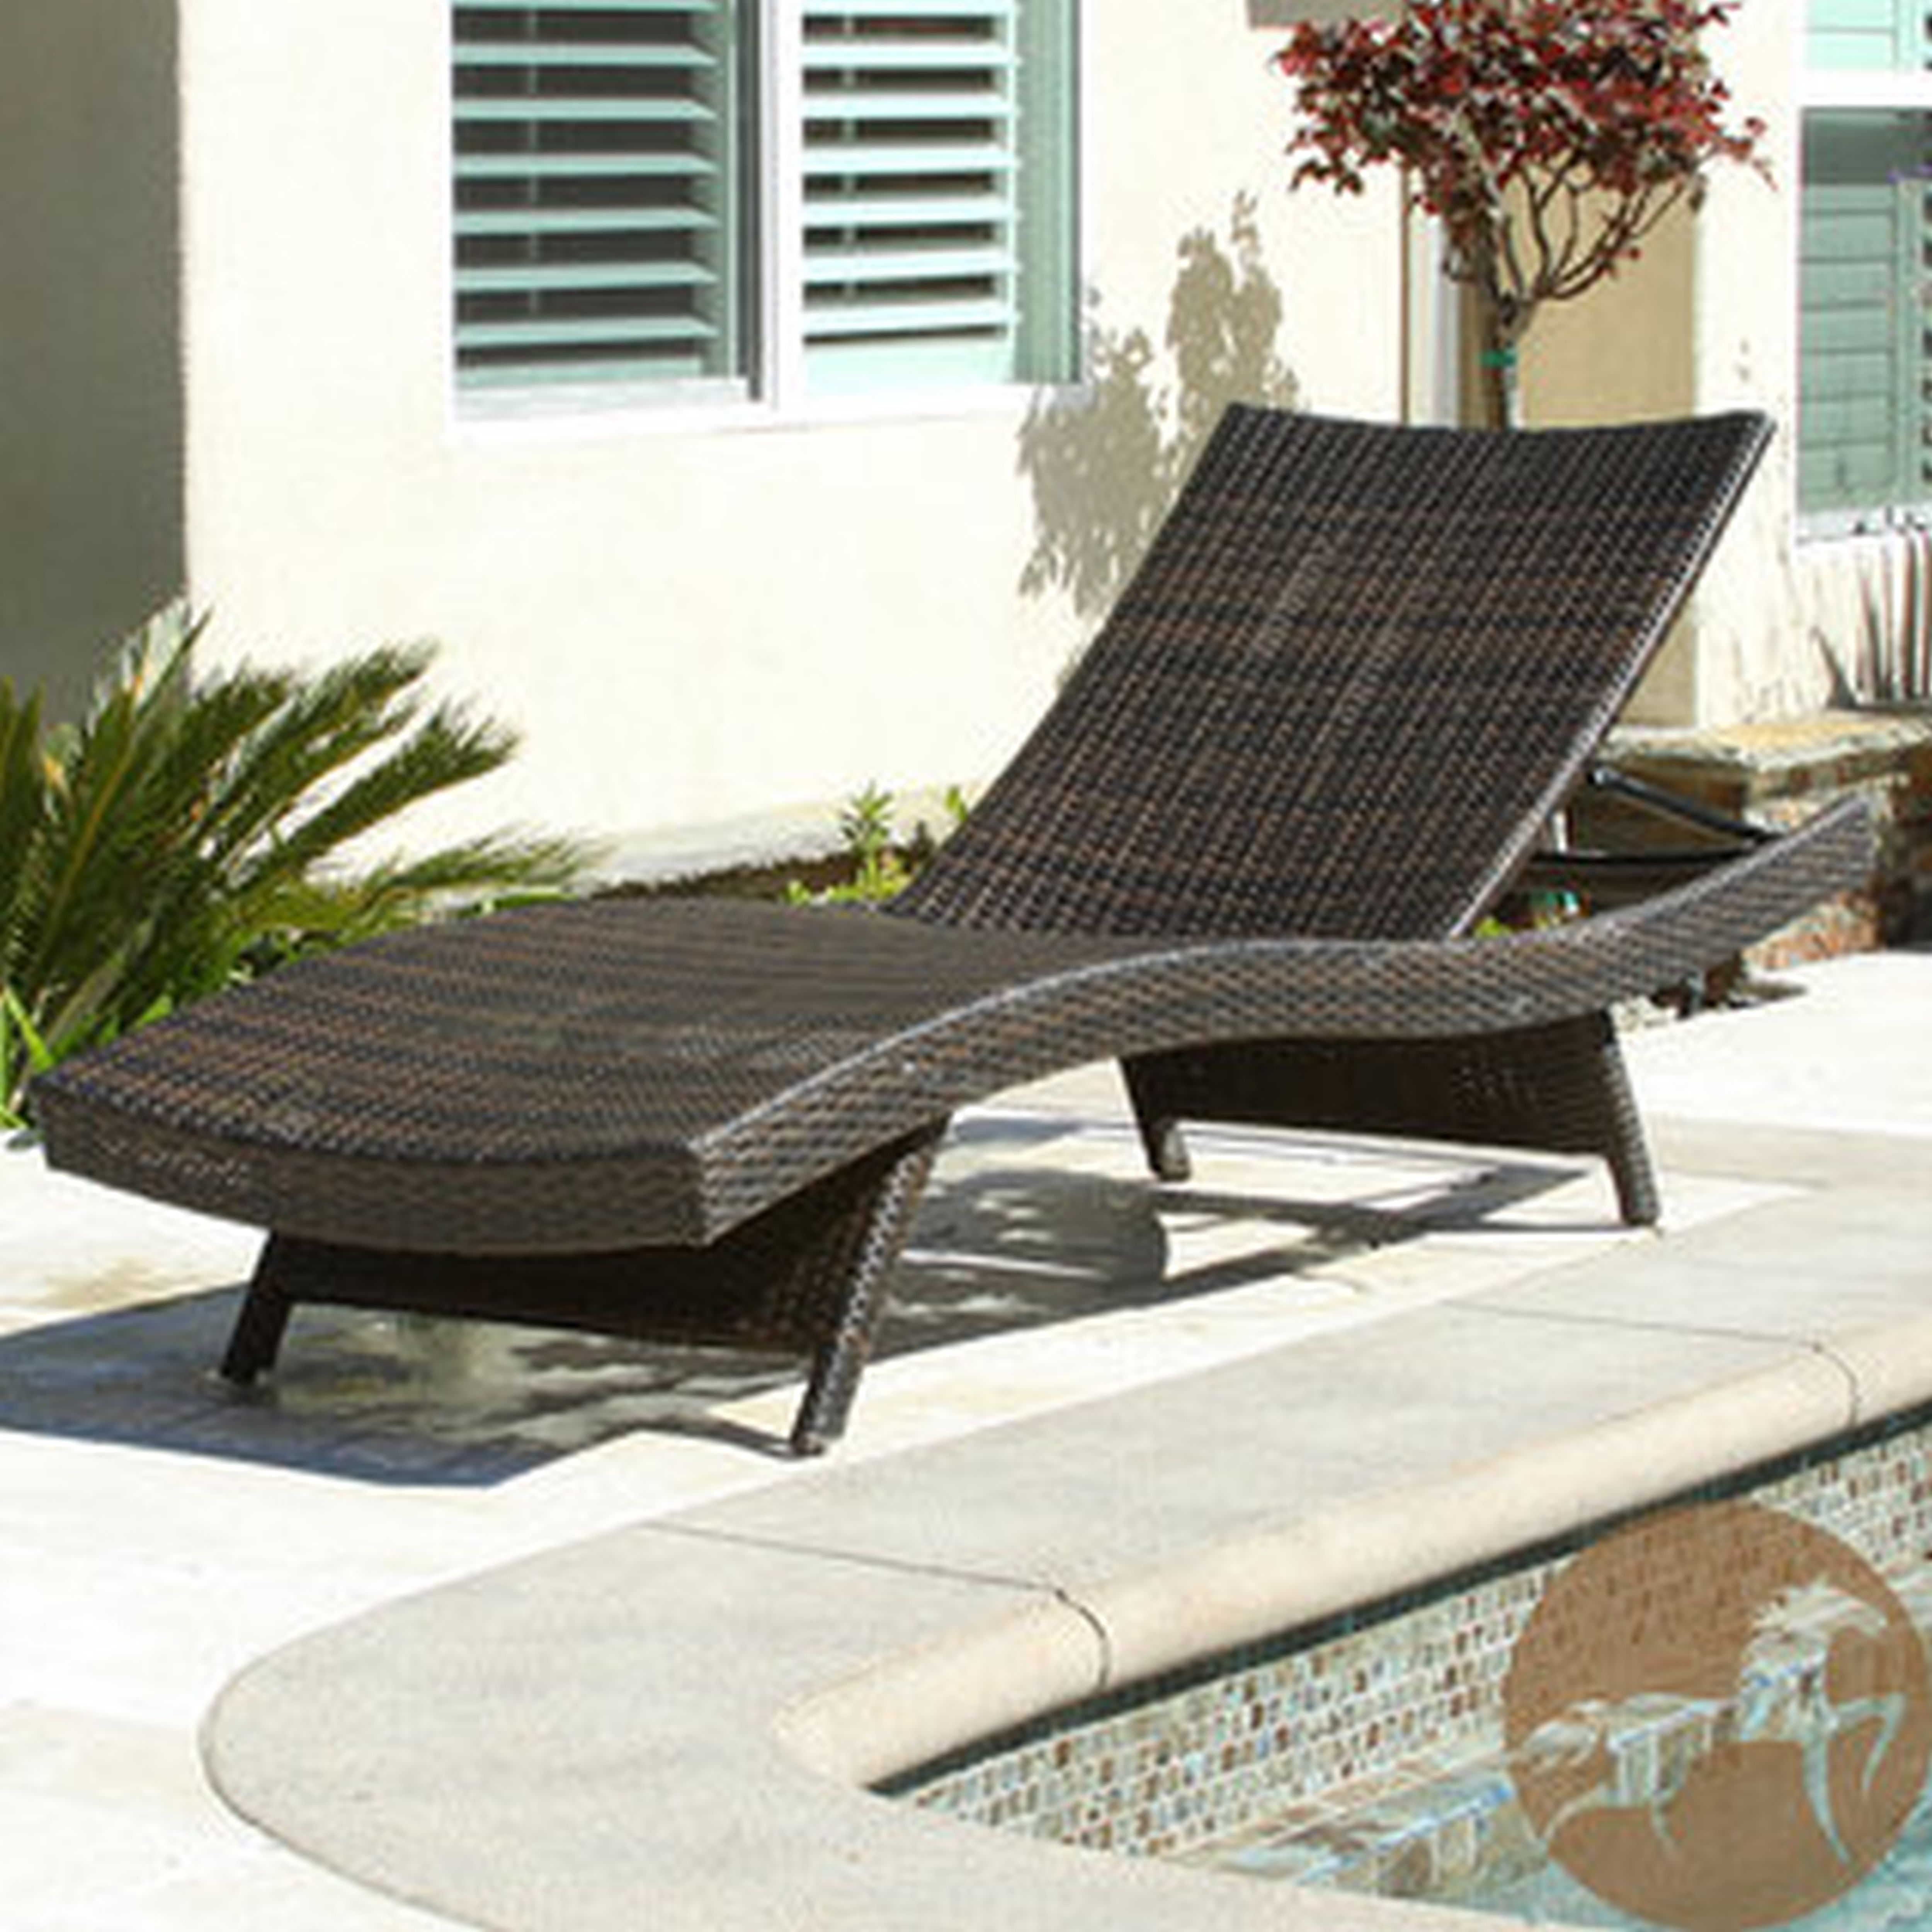 Lowes Chaise Lounges In Best And Newest Furniture: All Weather Wicker Patio Furniture Design With Lowes (View 9 of 15)